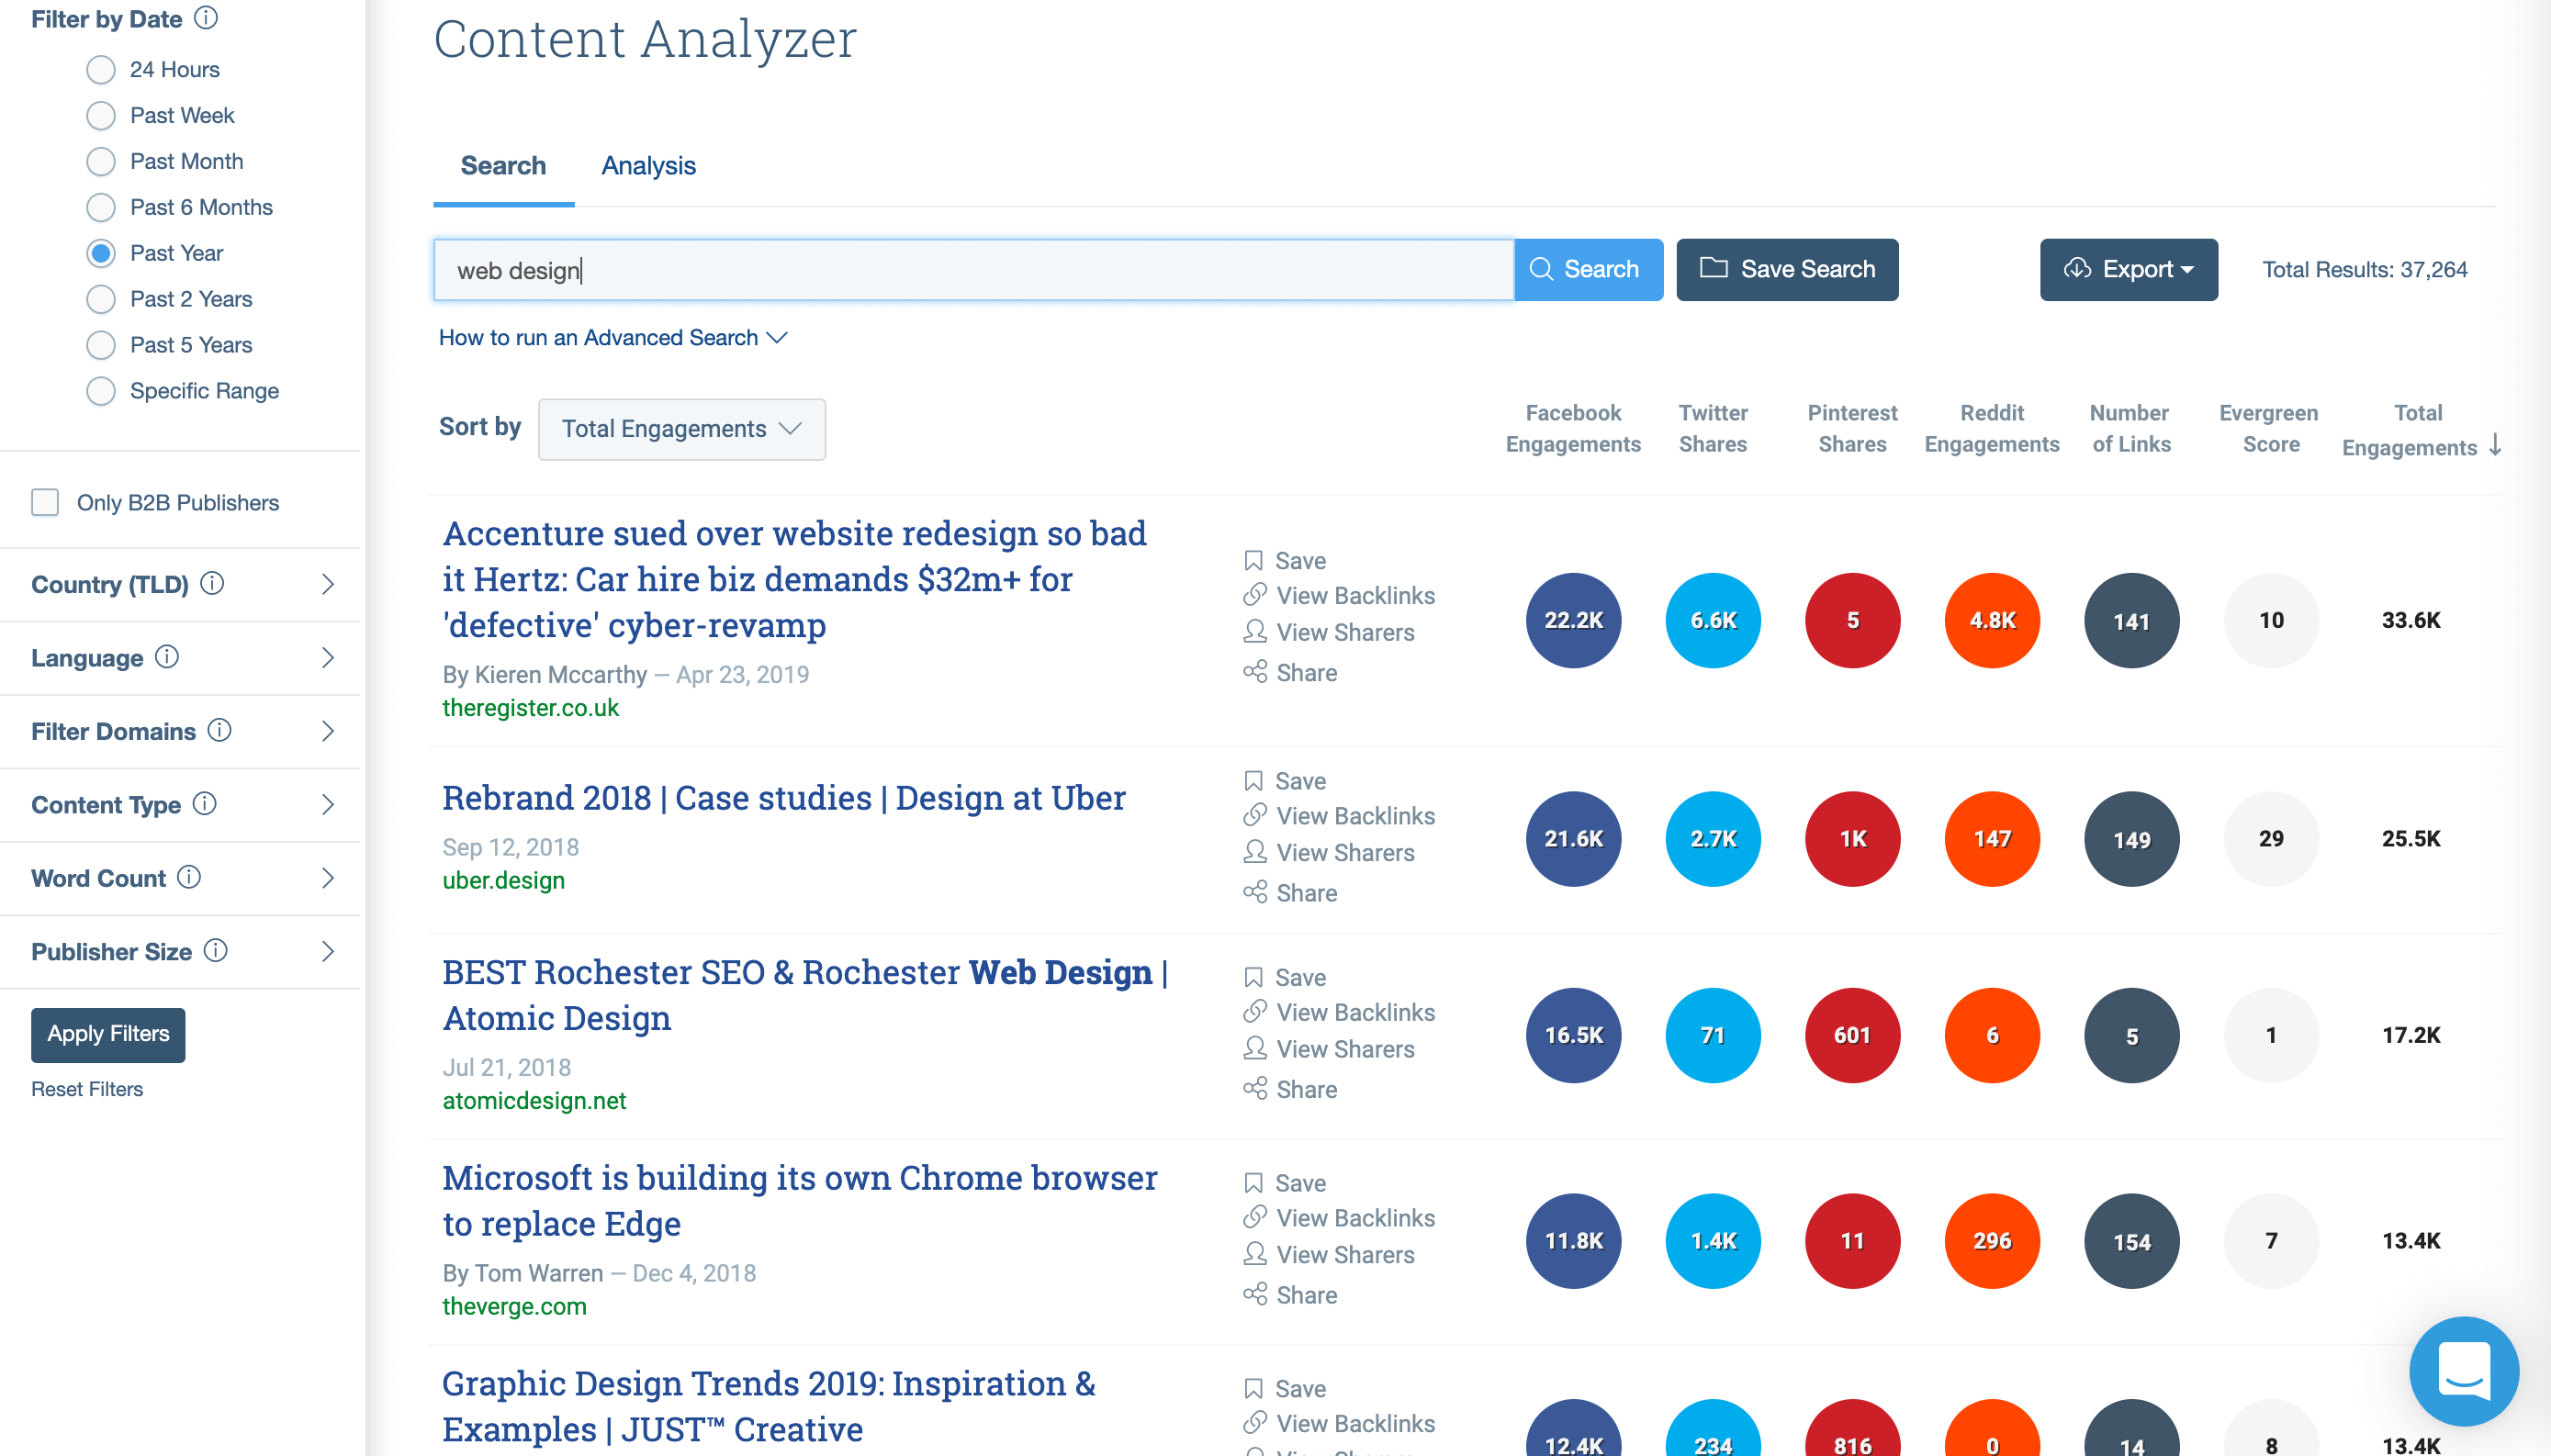 BuzzSumo's content search tool can help you with how to overcome writer's block